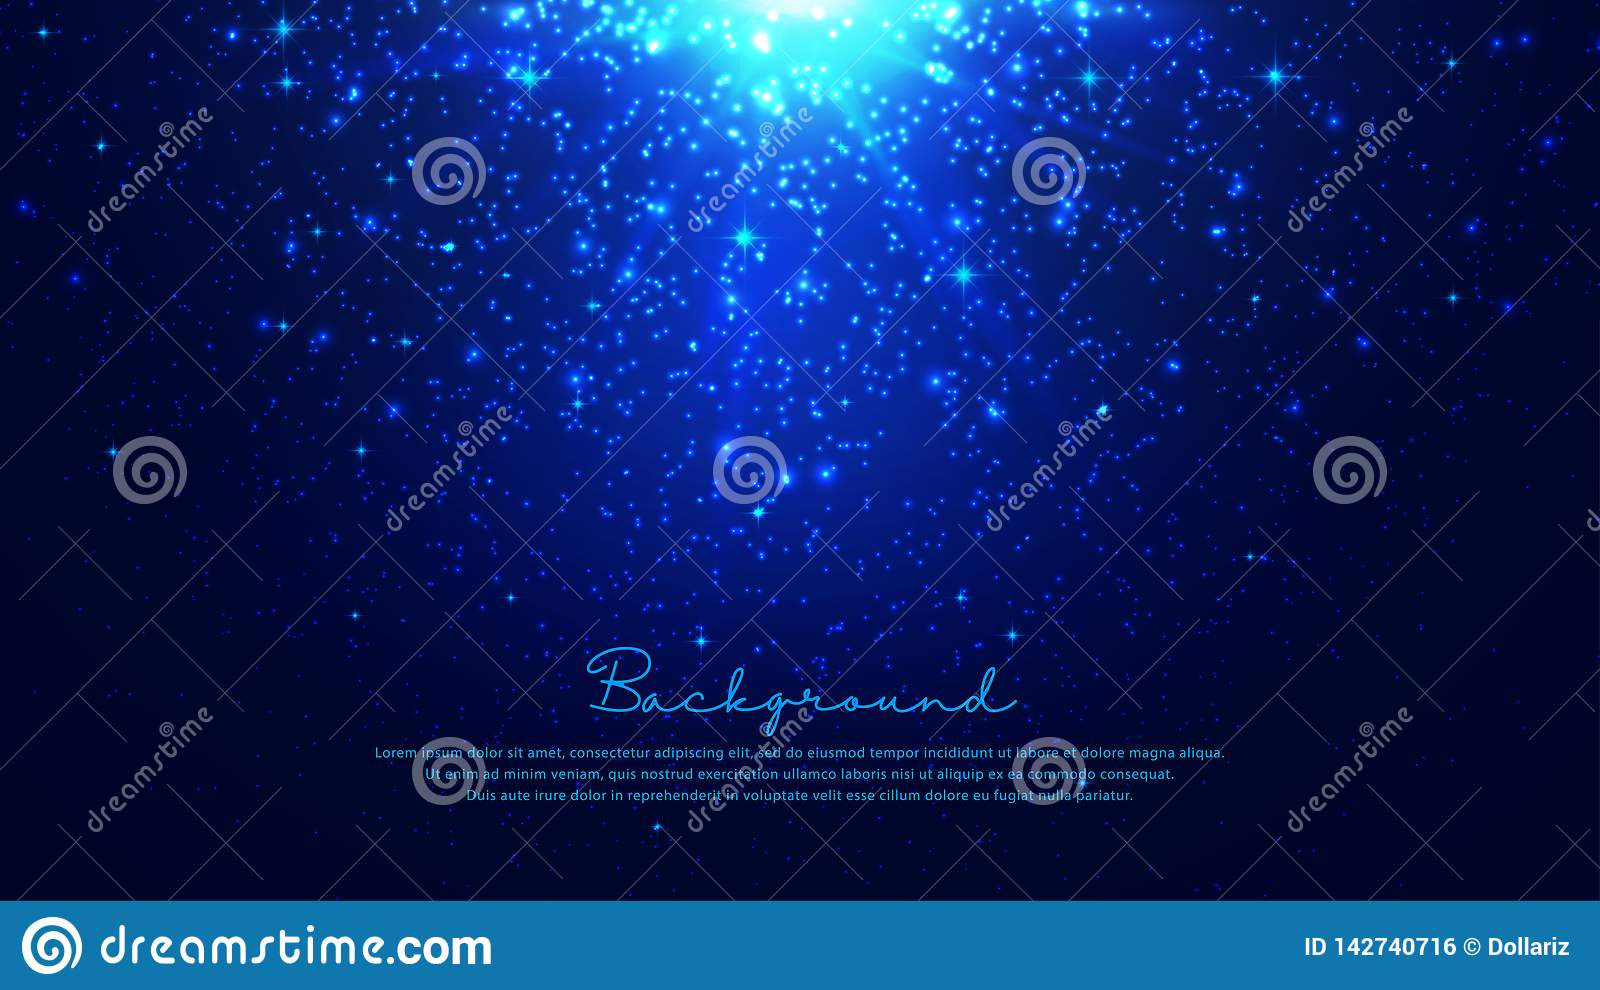 Shining abstract particles background. Dynamic particle explosions background from the arrangement of millions of luminous